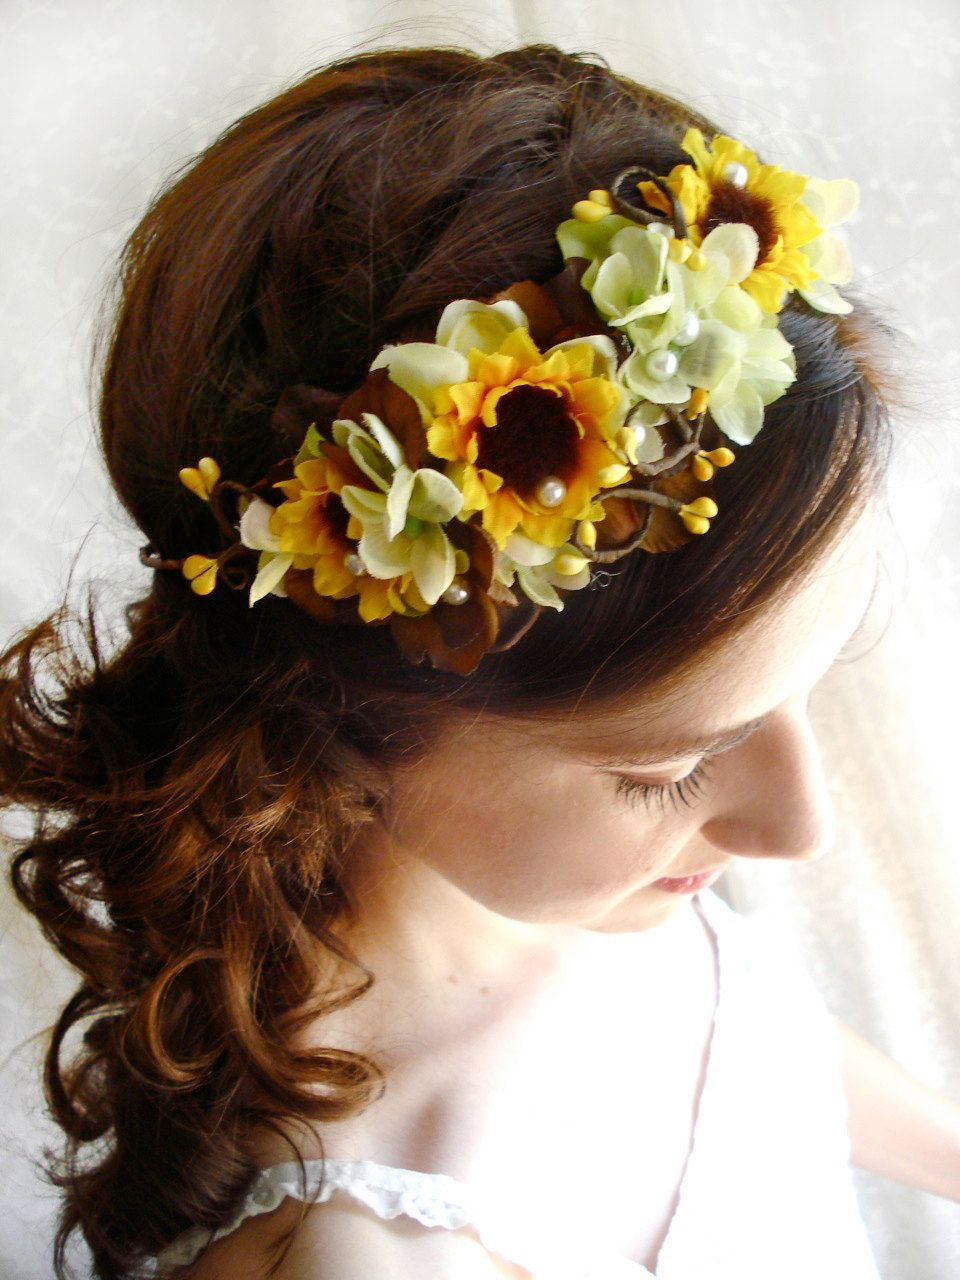 Yellow hair accessories for wedding - Sunflower Headpiece For Wedding Sunflower Head Wreath Yellow Flower Accessory Bridal Hair Piece